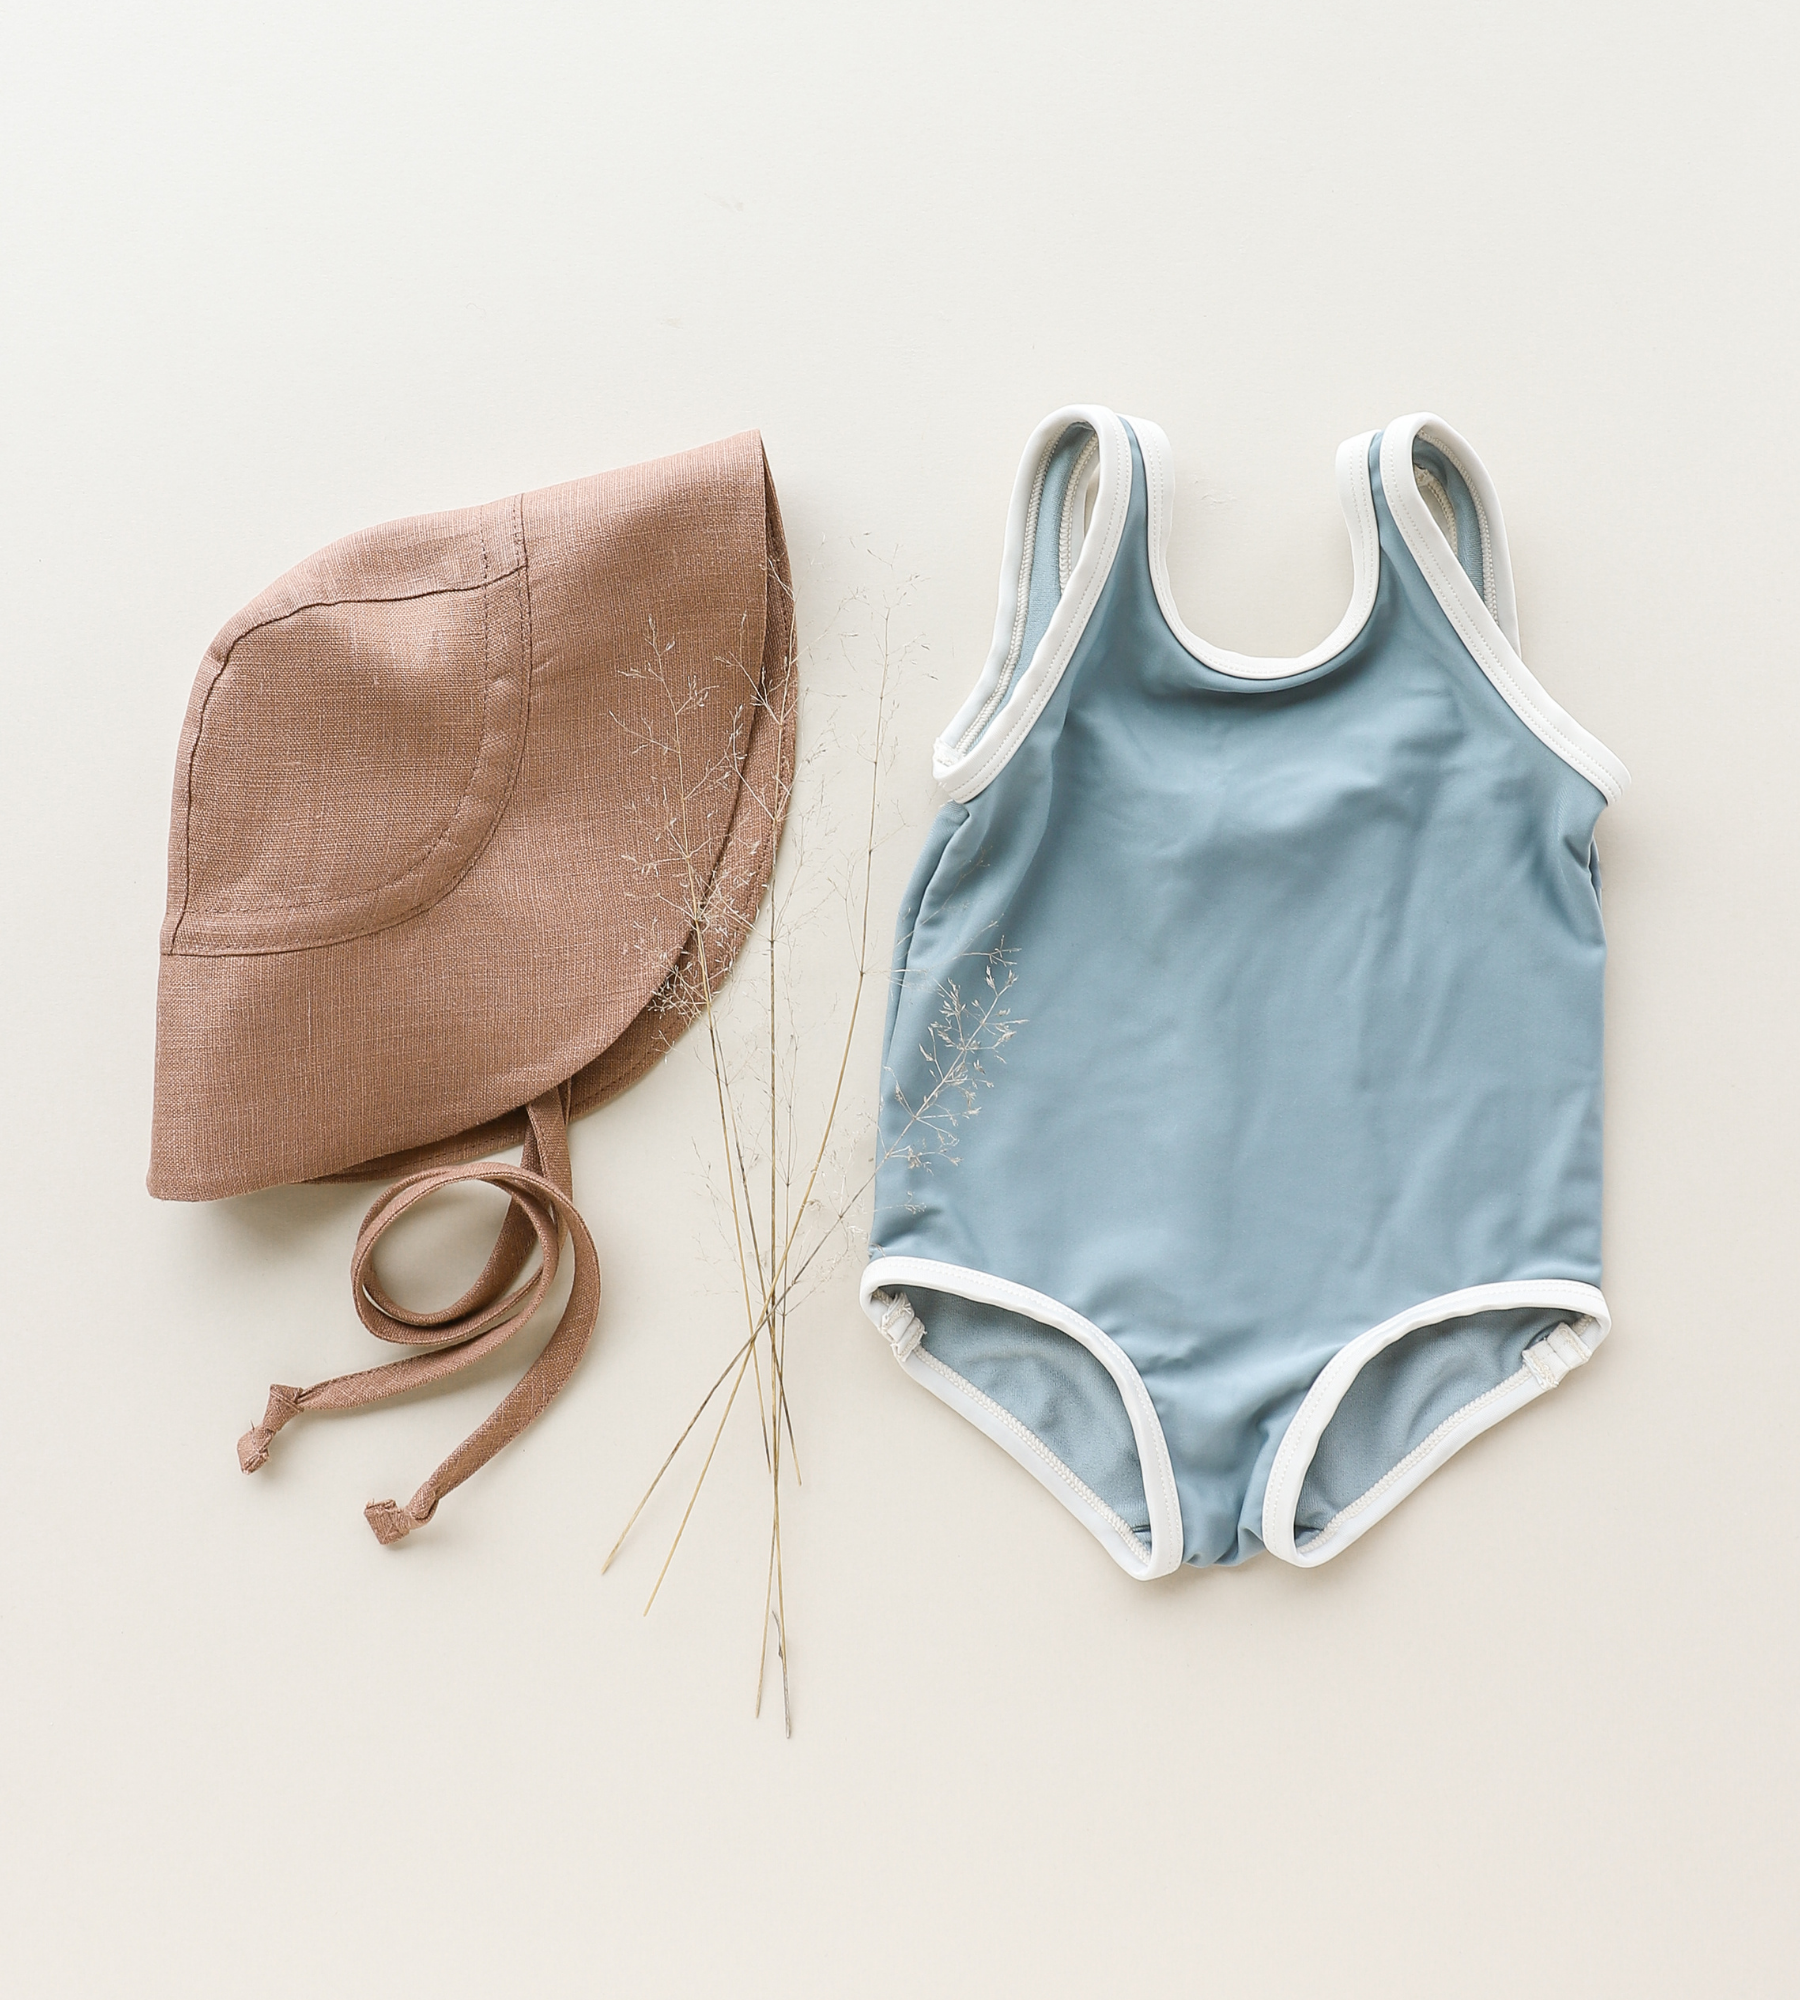 Caramel sunbonnet laid next to a light blue one-piece swimsuit with ivory trim